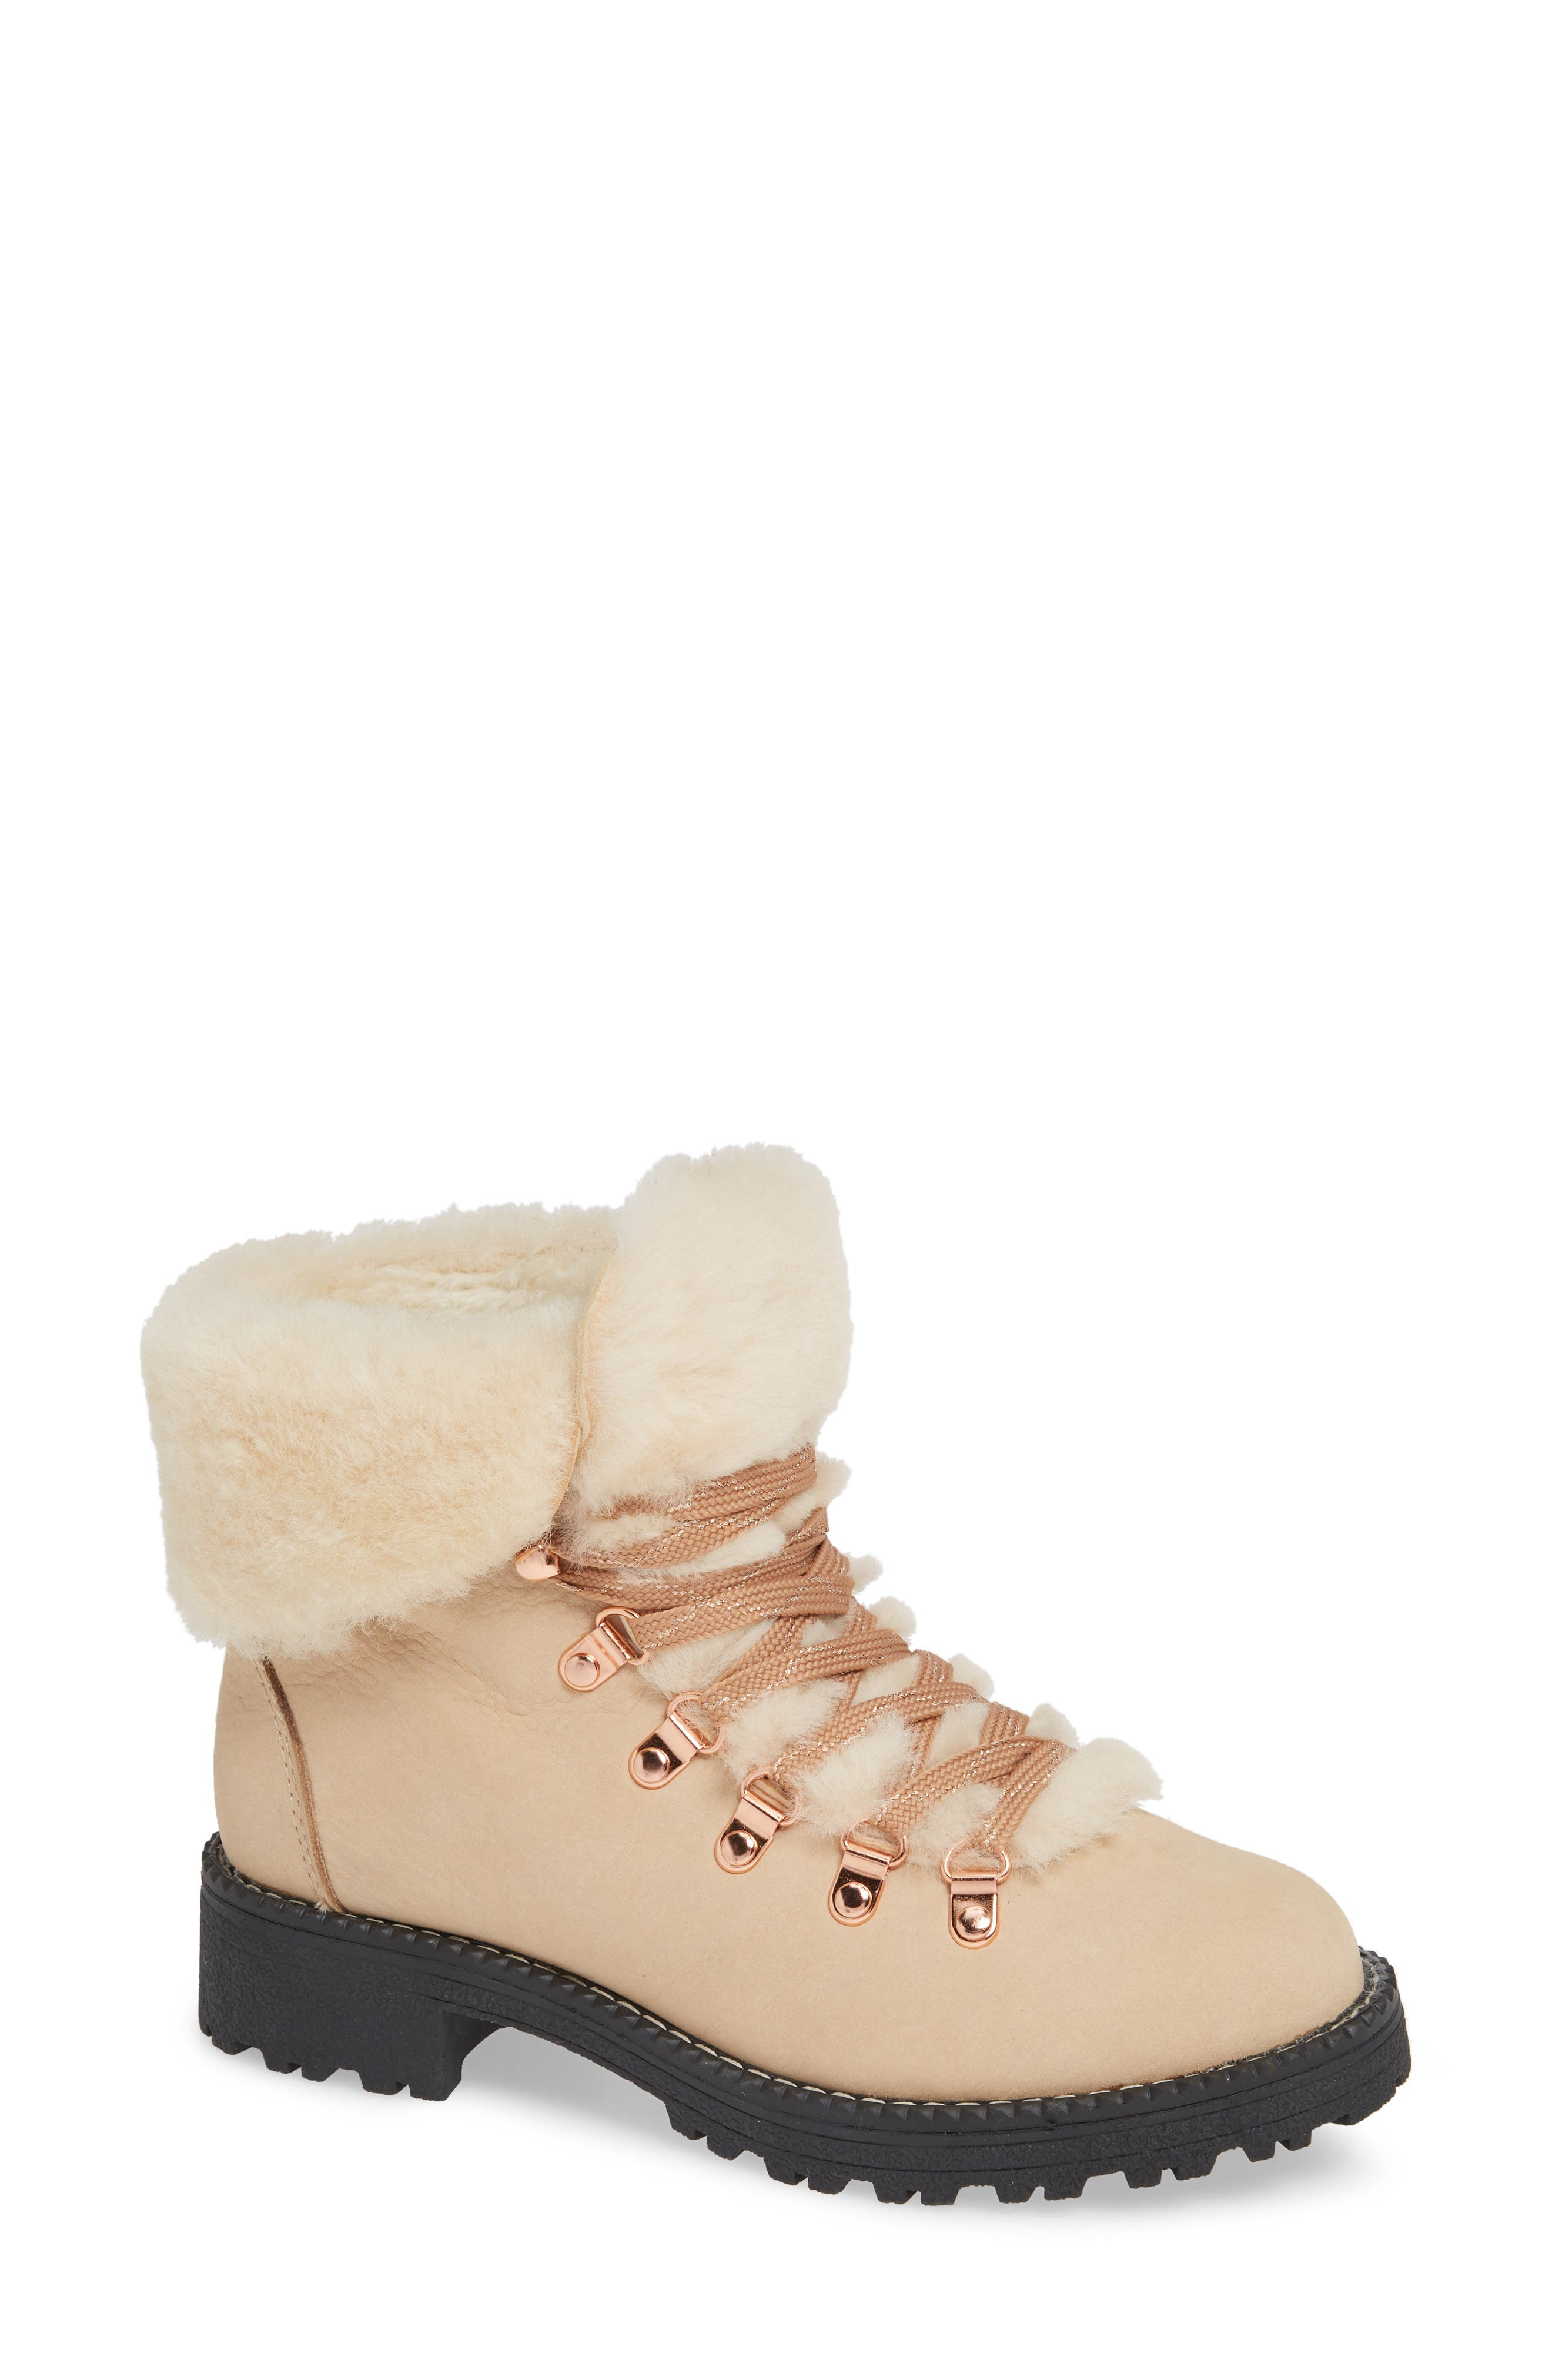 J.CREW, Nordic Genuine Shearling Cuff Winter Boot, Main thumbnail 1, color, 251